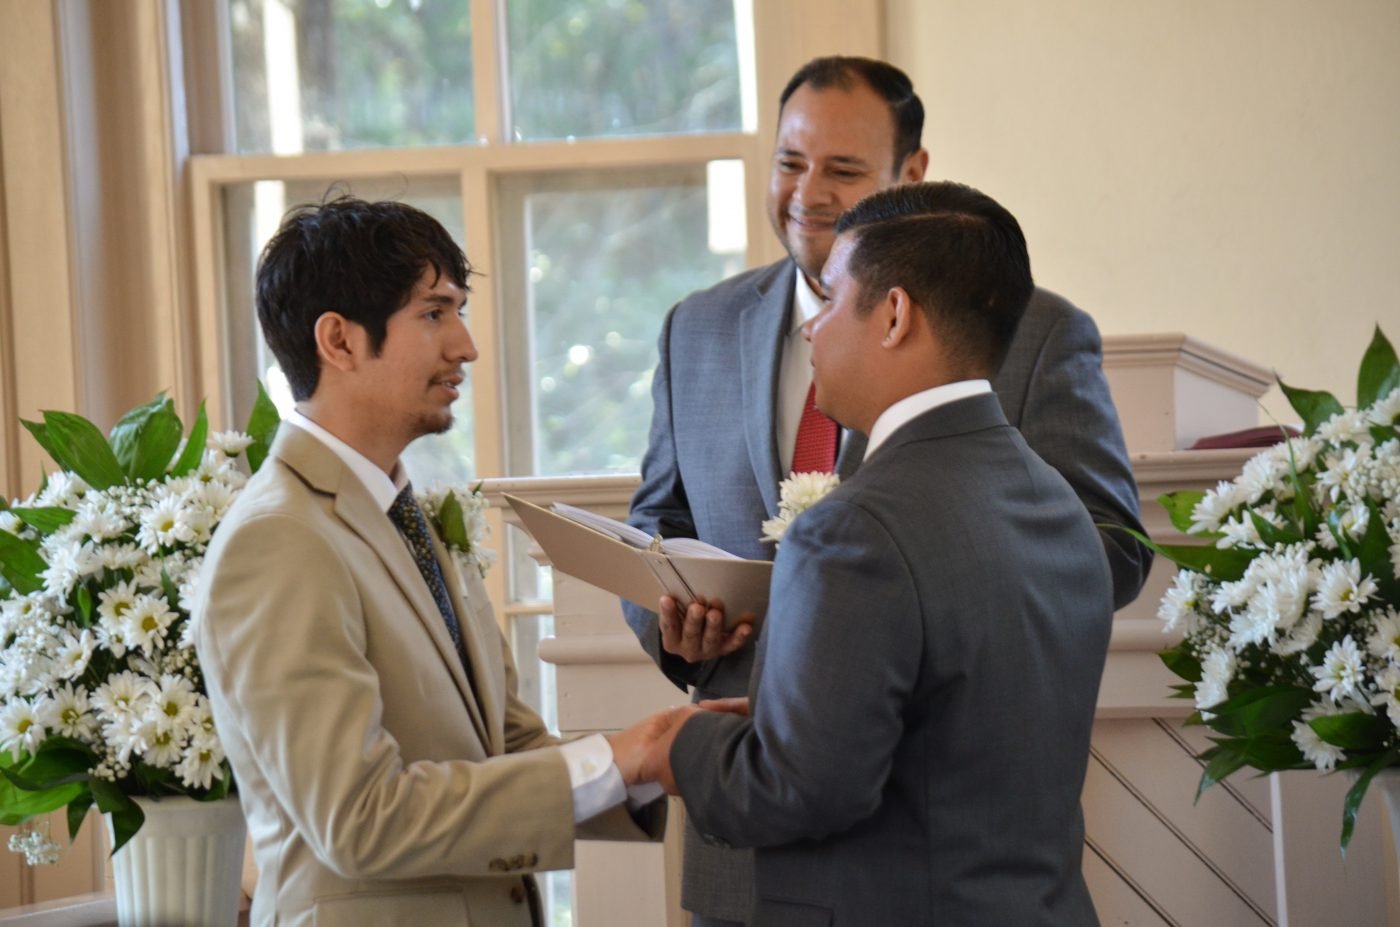 Secular Wedding Ceremony.About Texas Wedding Ministers Professional Wedding Officiants